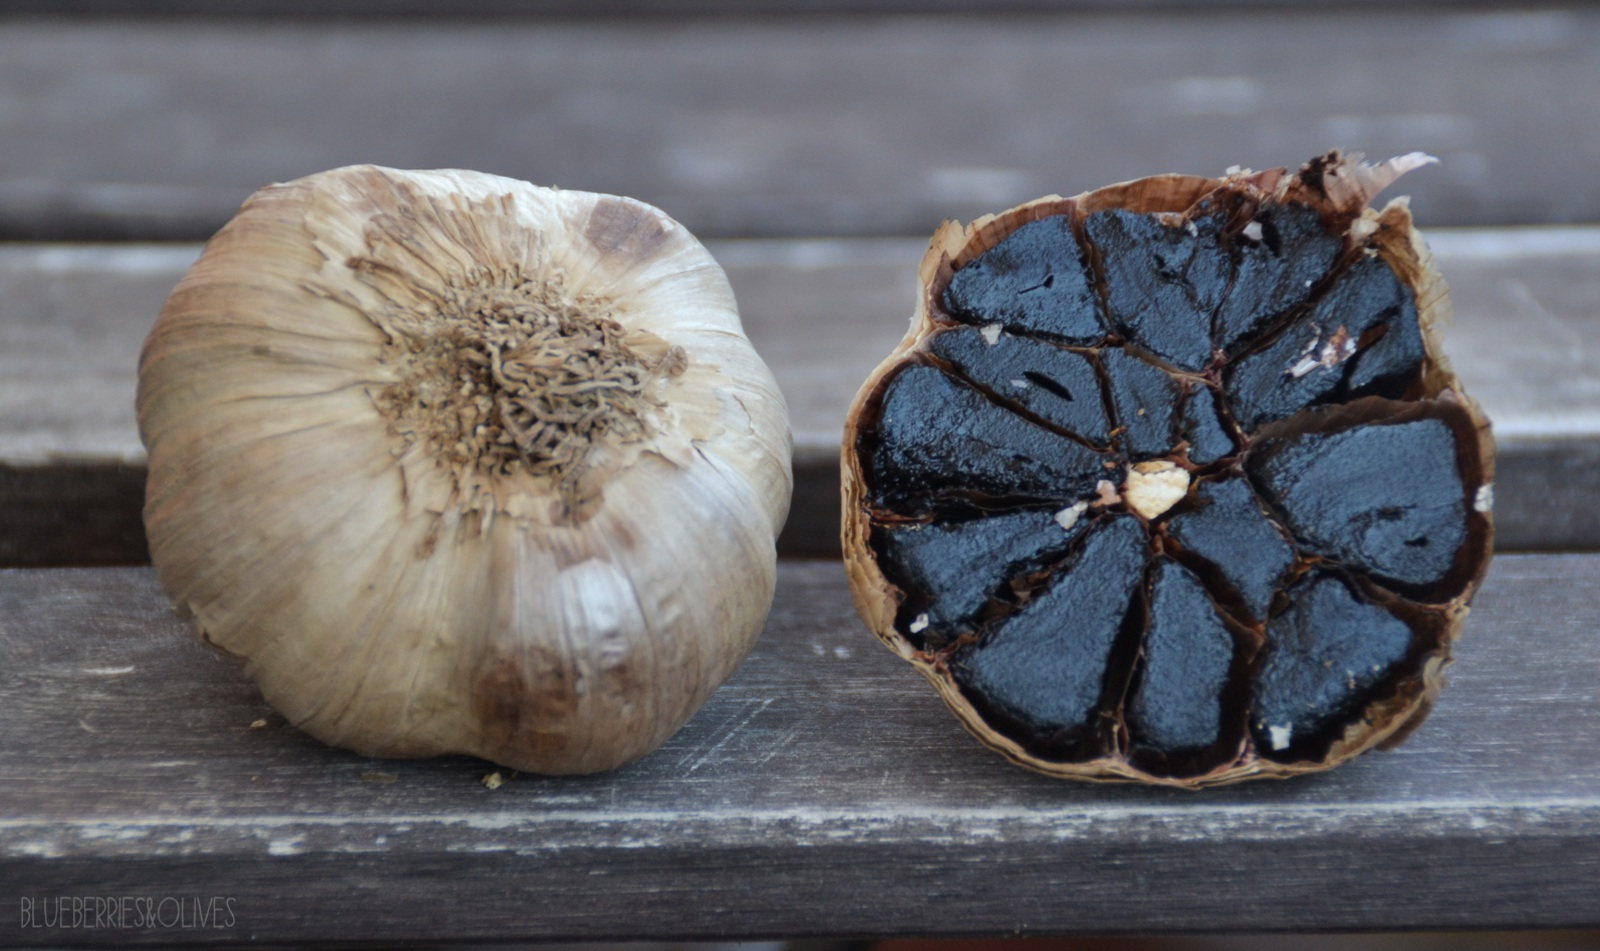 BLACK GARLIC - BLACK GARLIC AND NUTS COLD SOUP